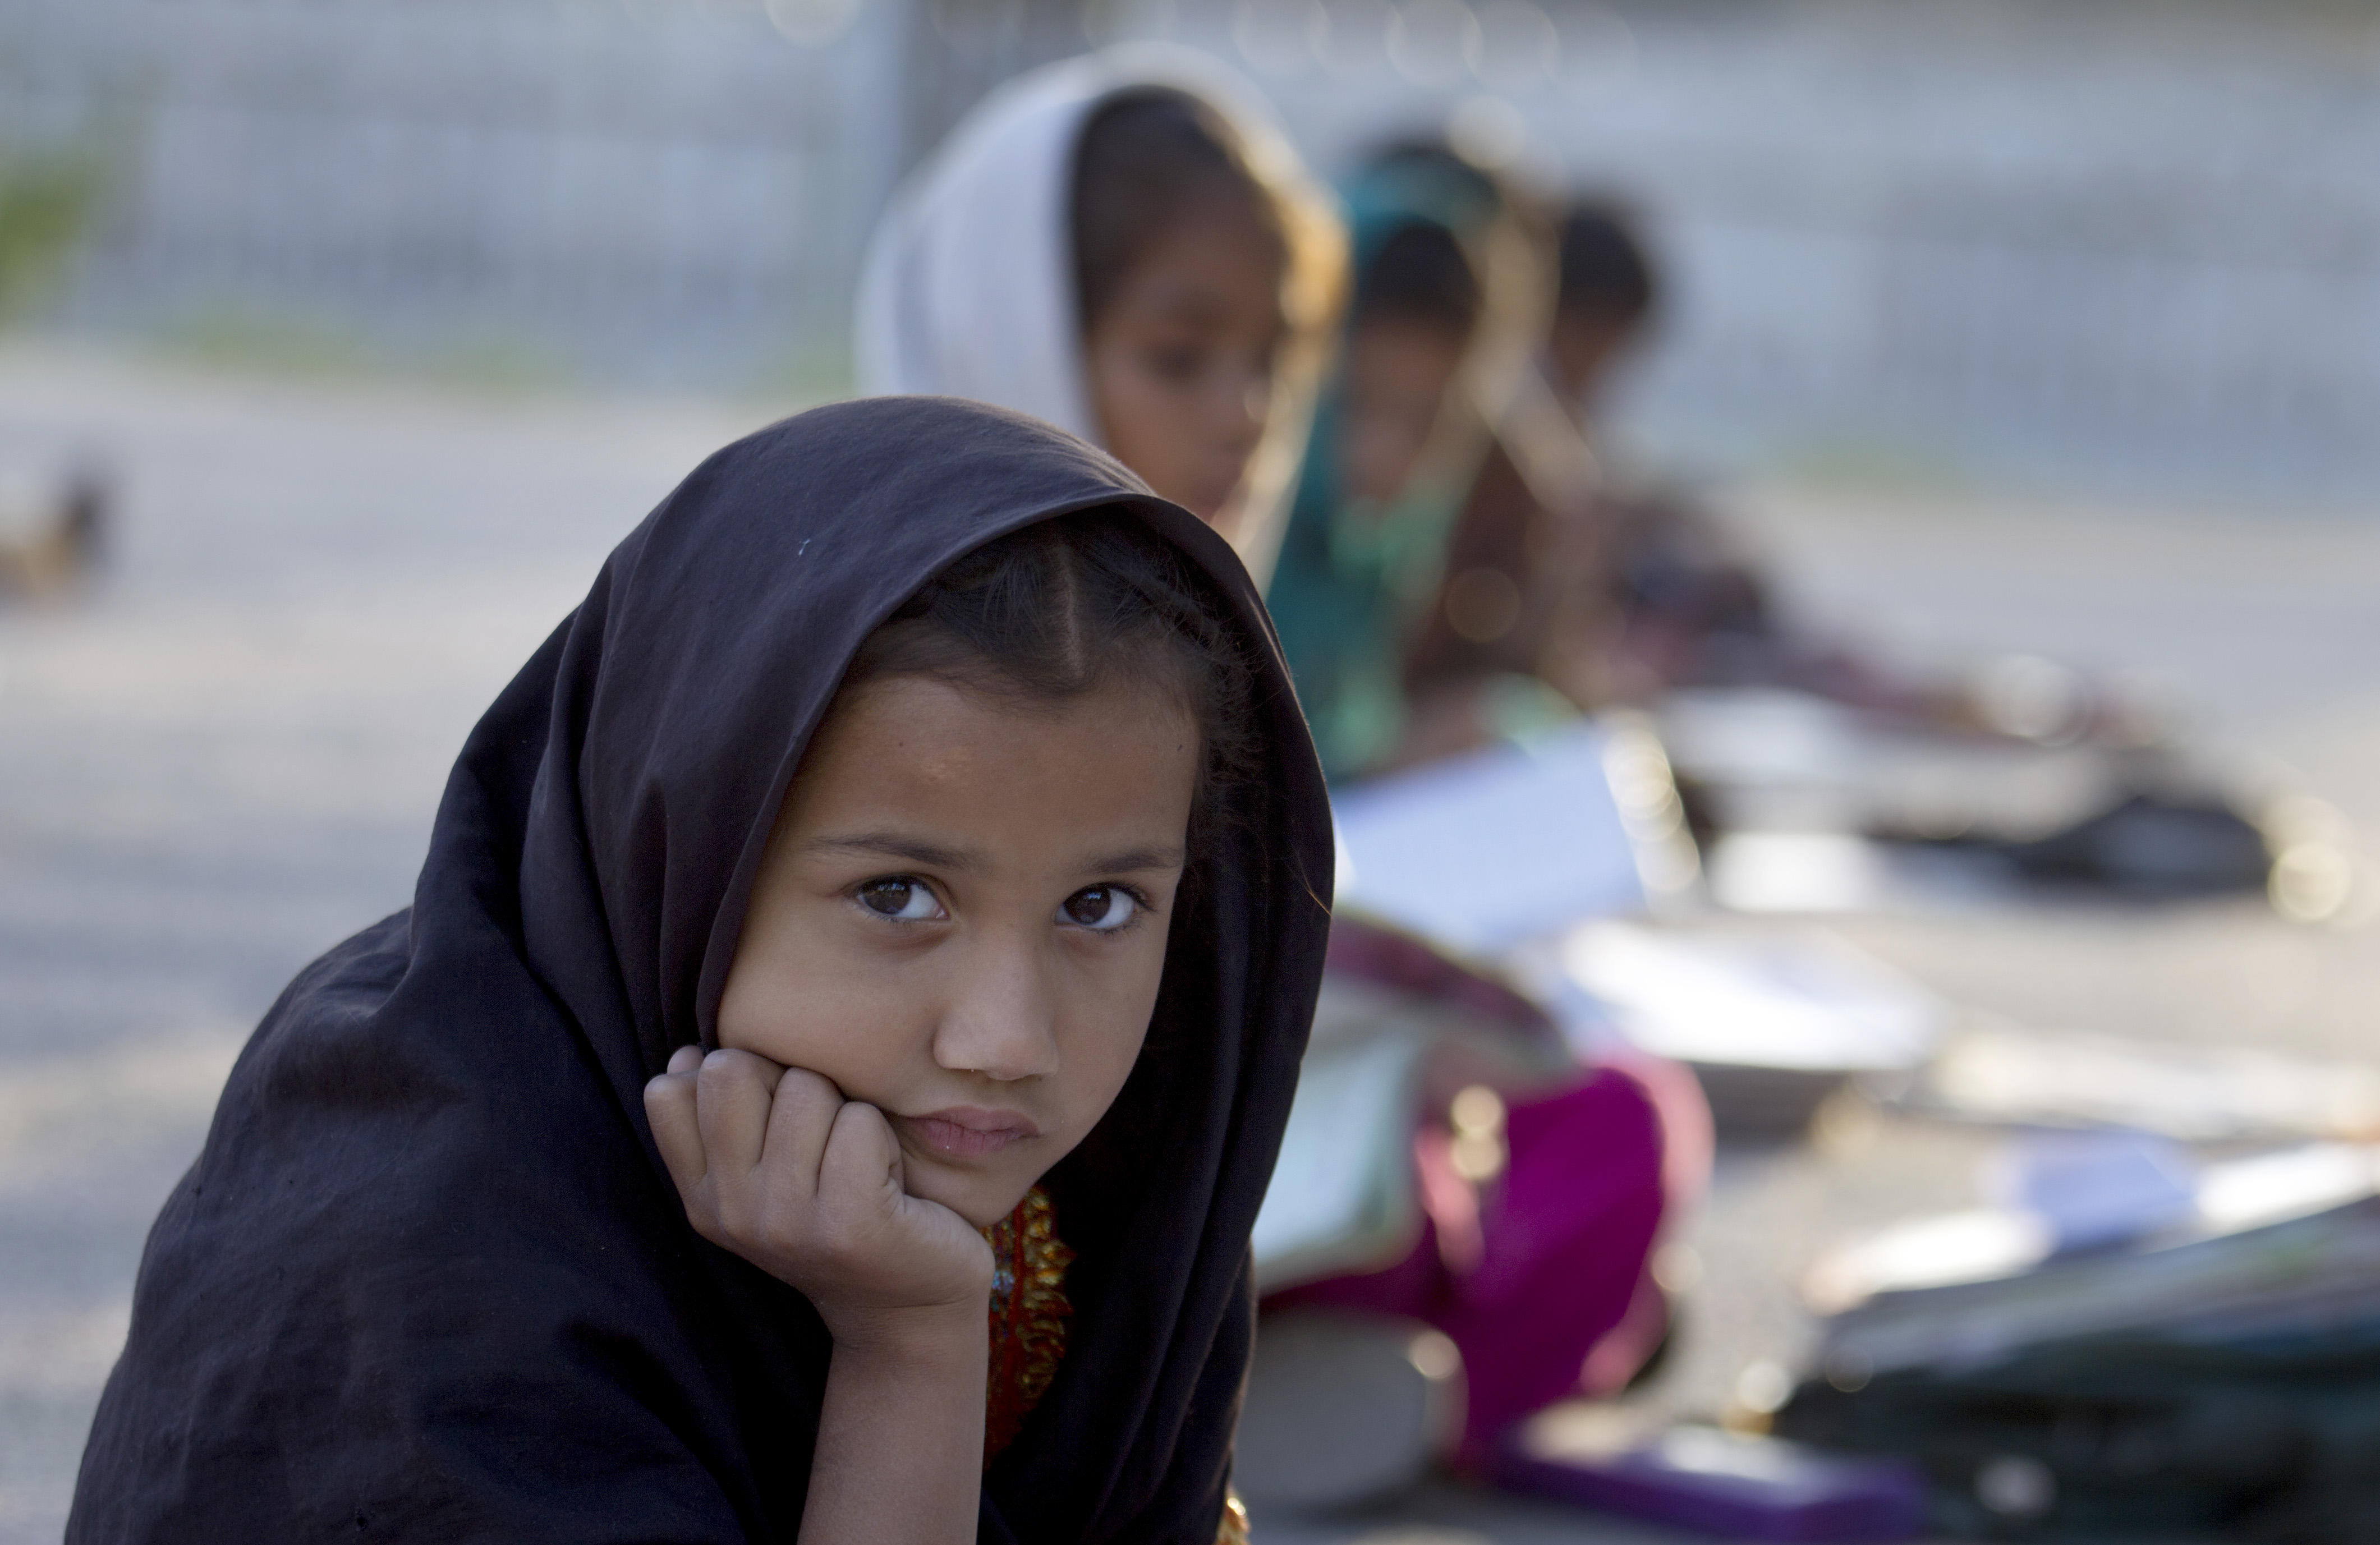 Pakistani student Farah Muneeb sits with other students at a makeshift school set up by a volunteer in a park in Islamabad, Pakistan on Thursday, Oct 11, 2012.